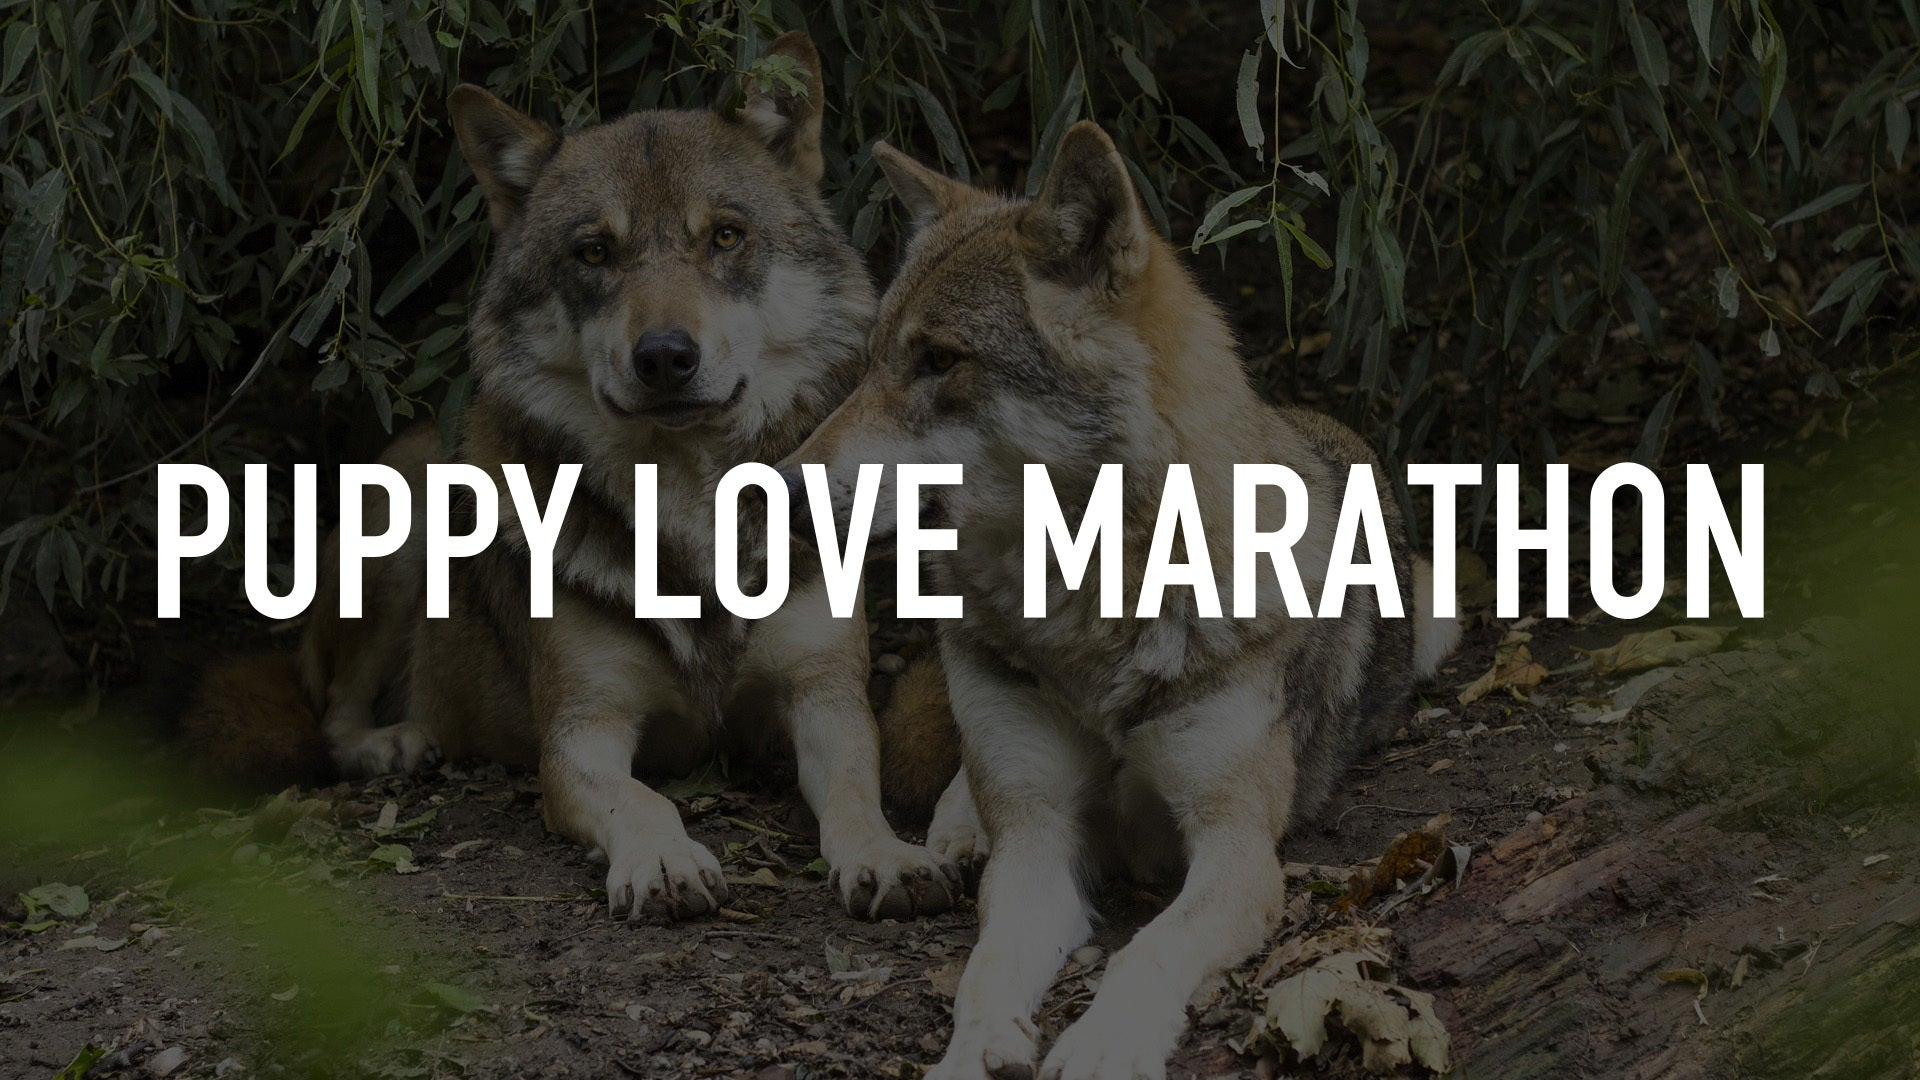 Puppy Love Marathon